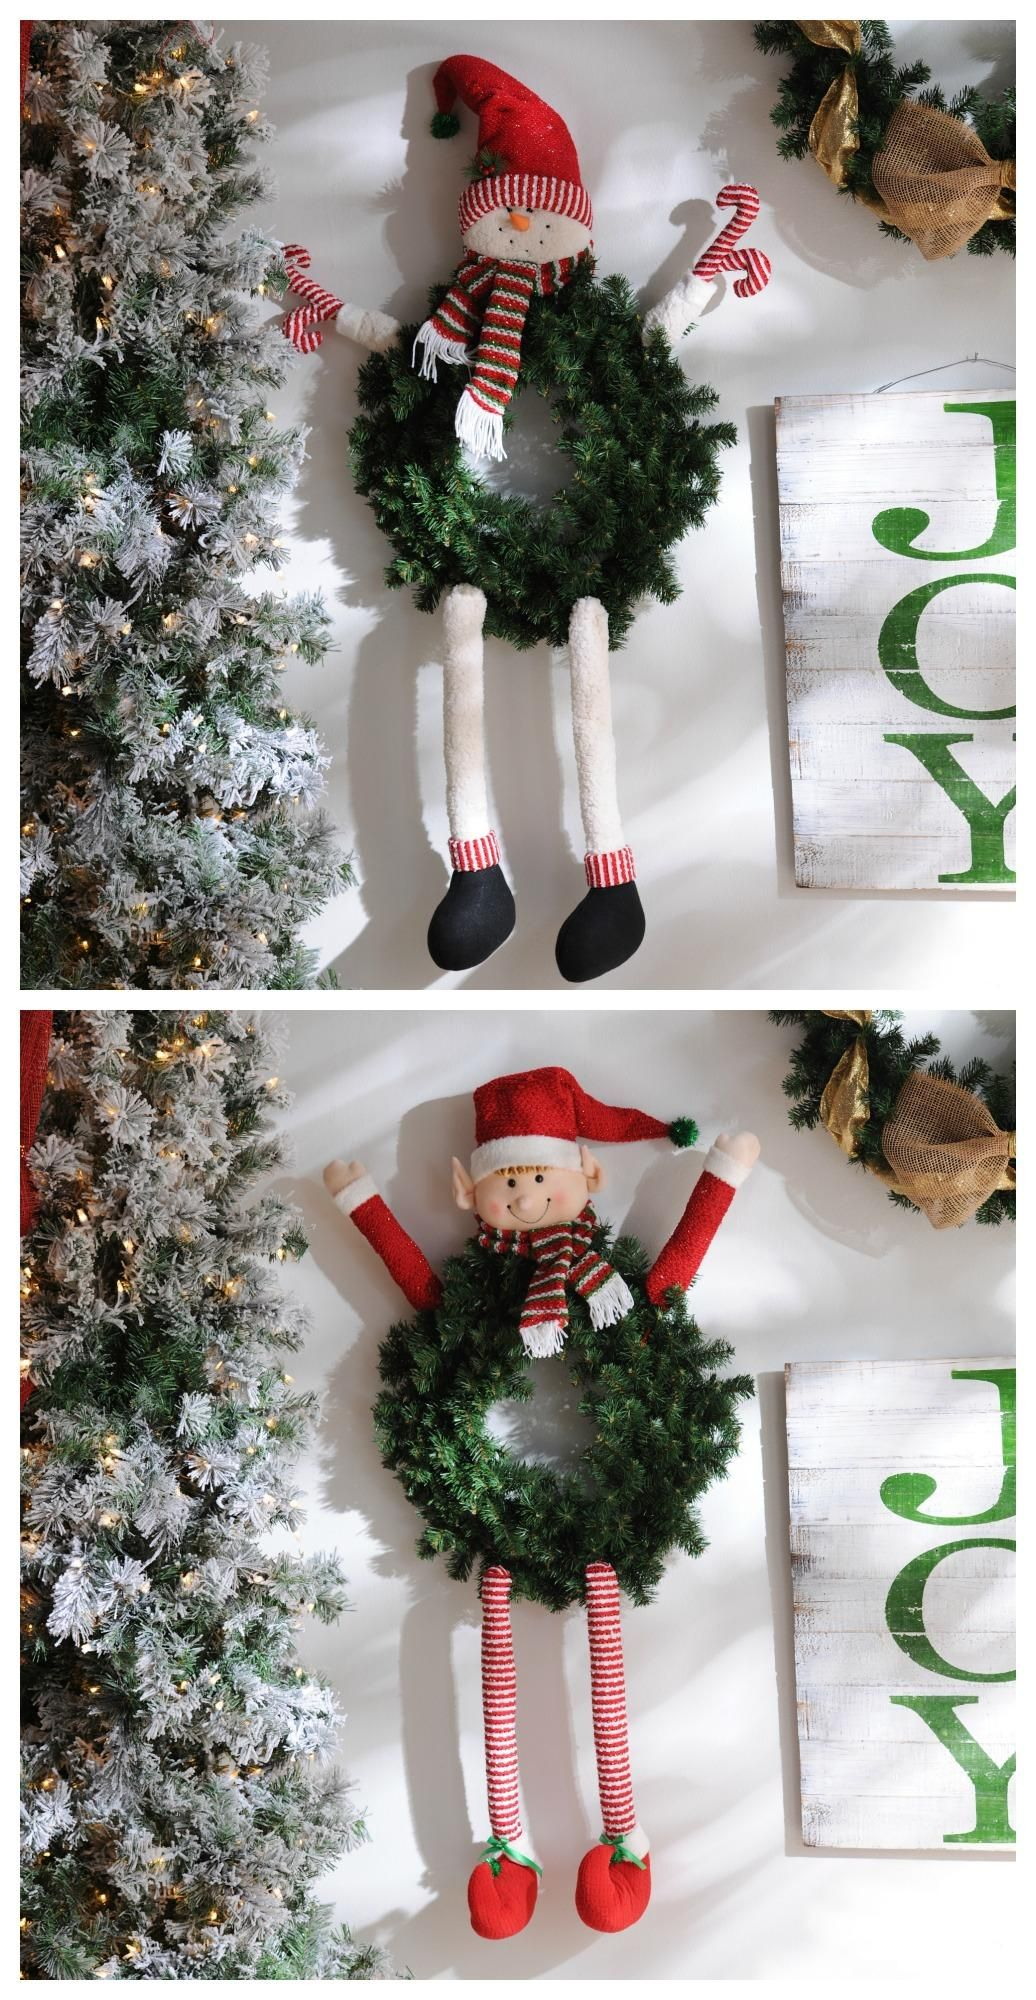 Have some fun with your Christmas wreath by adding a Snowman or Elf ...